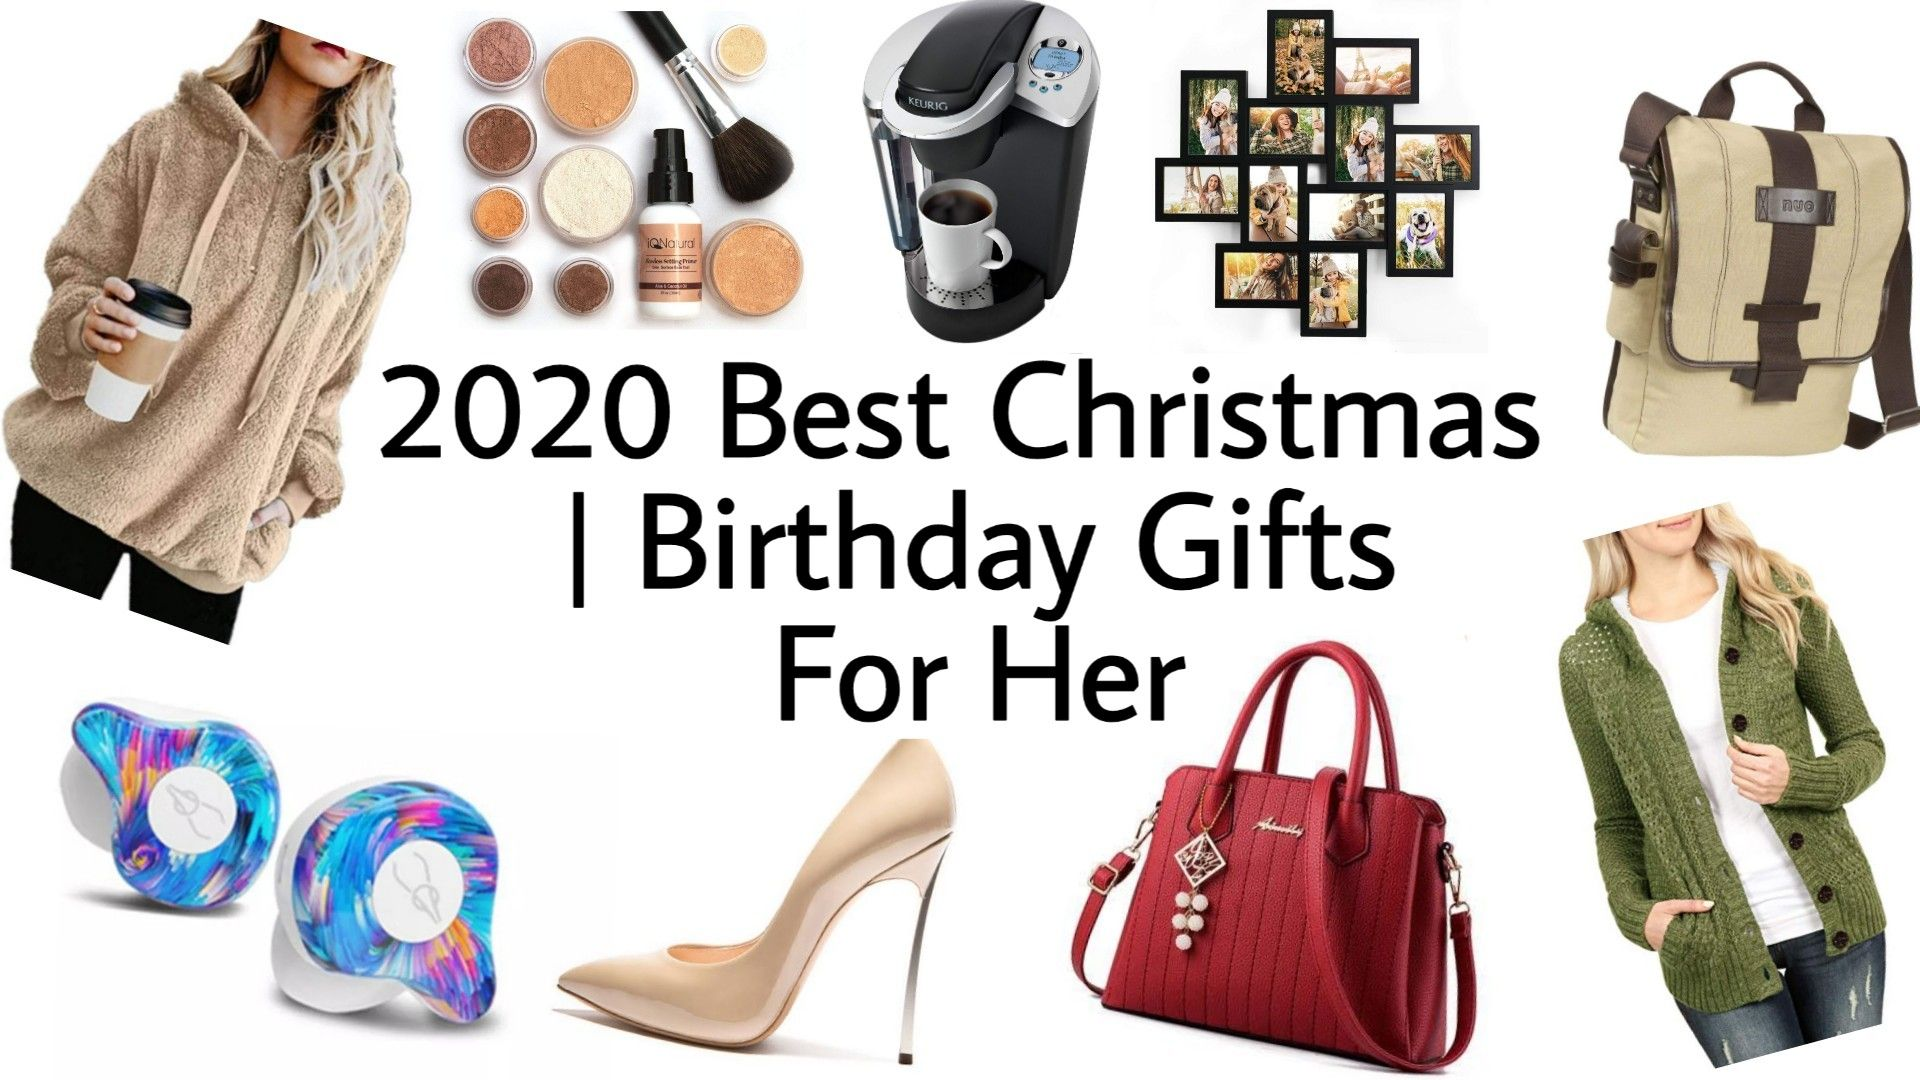 Christmas Presents For Girlfriend 2020 Top Christmas Gifts for Her,Girls,Girlfriend,Wife 2020, Best